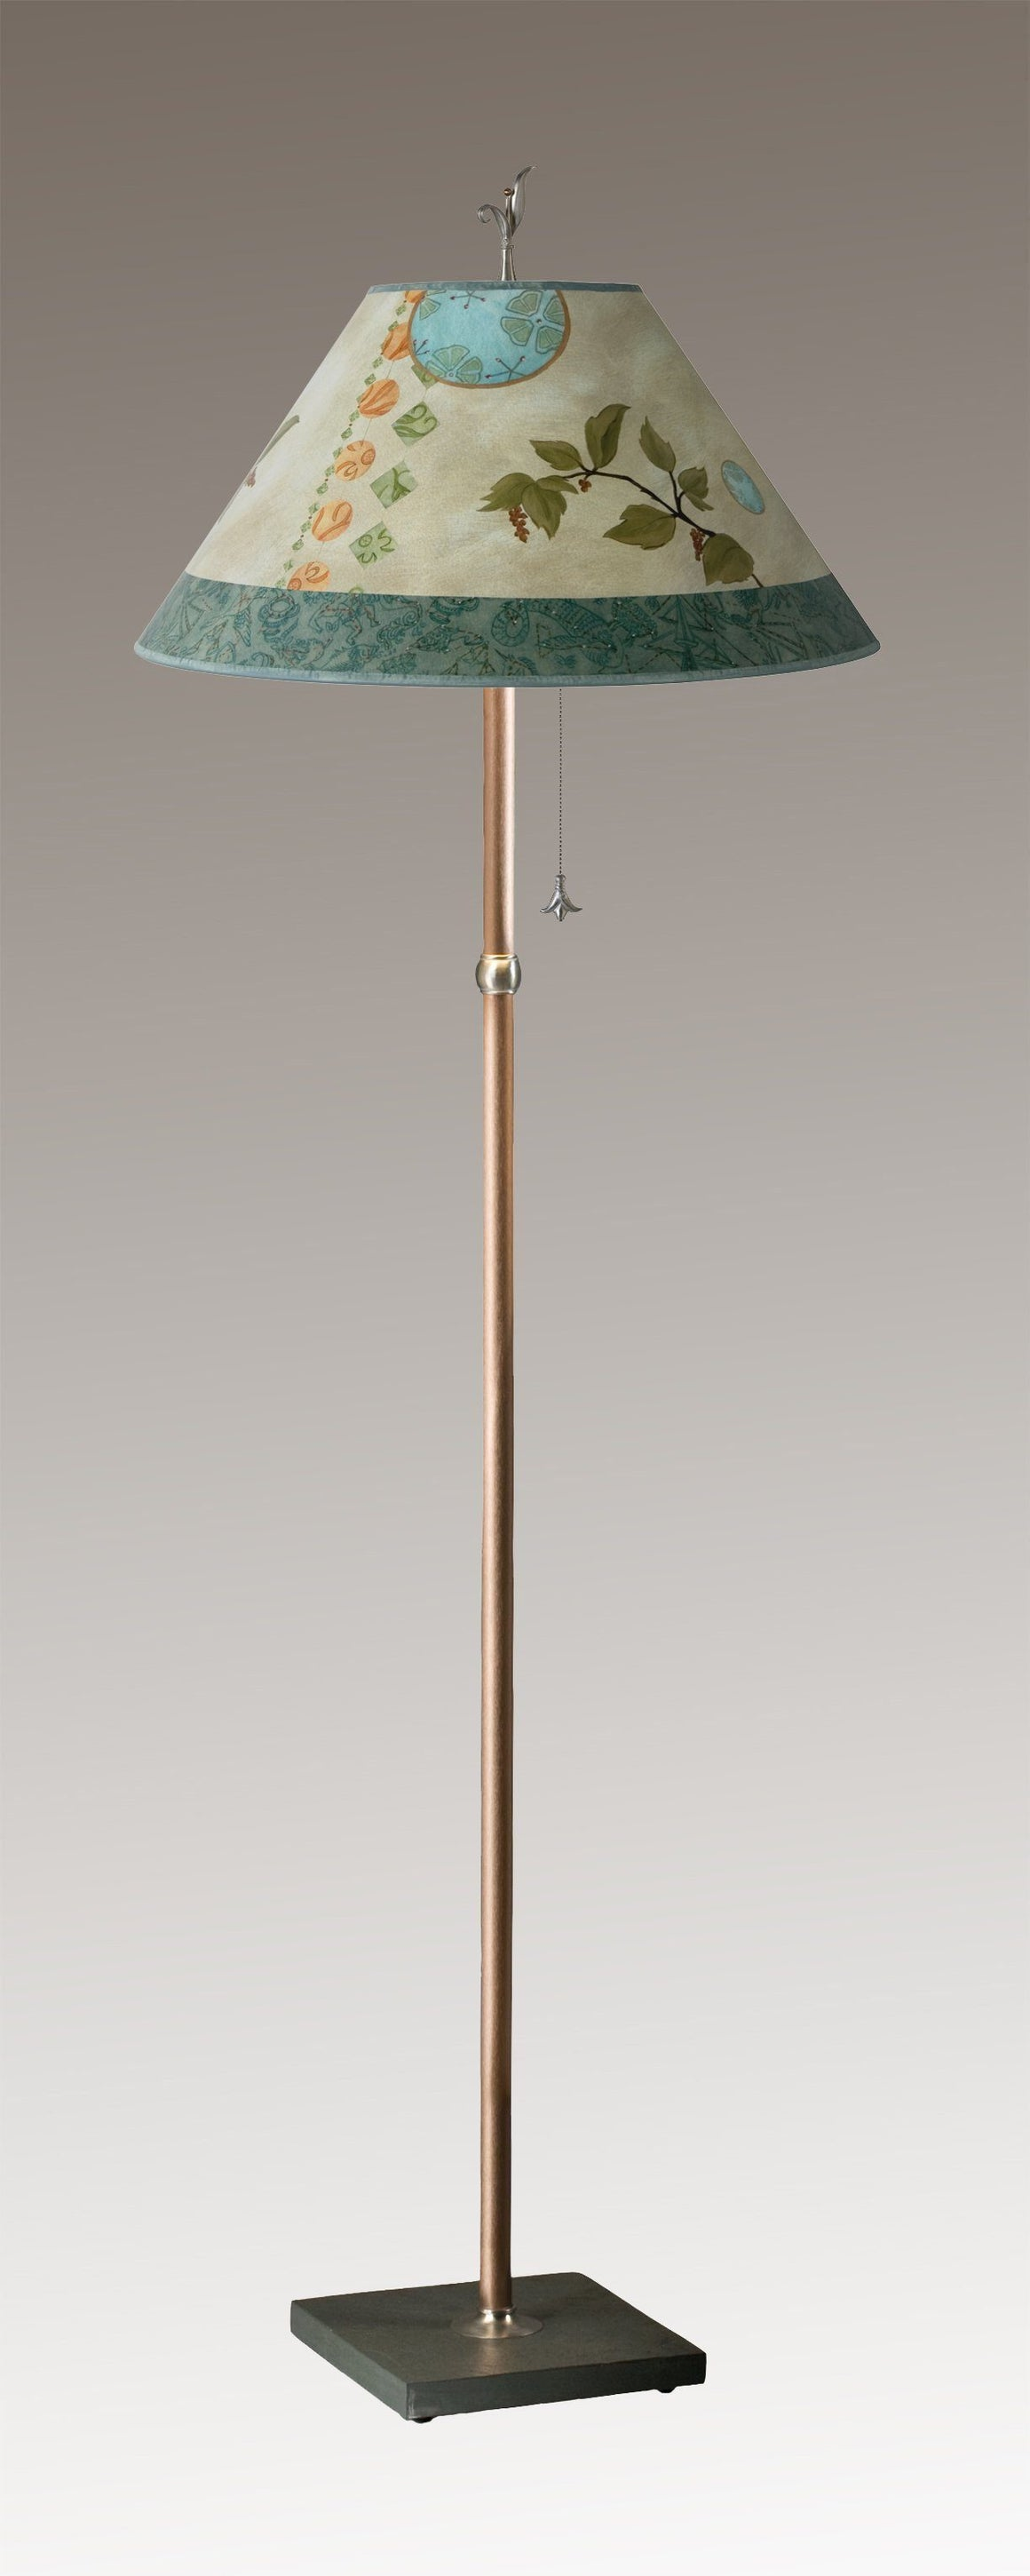 Copper Floor Lamp on Vermont Slate Base with Large Conical Shade in Celestial Leaf